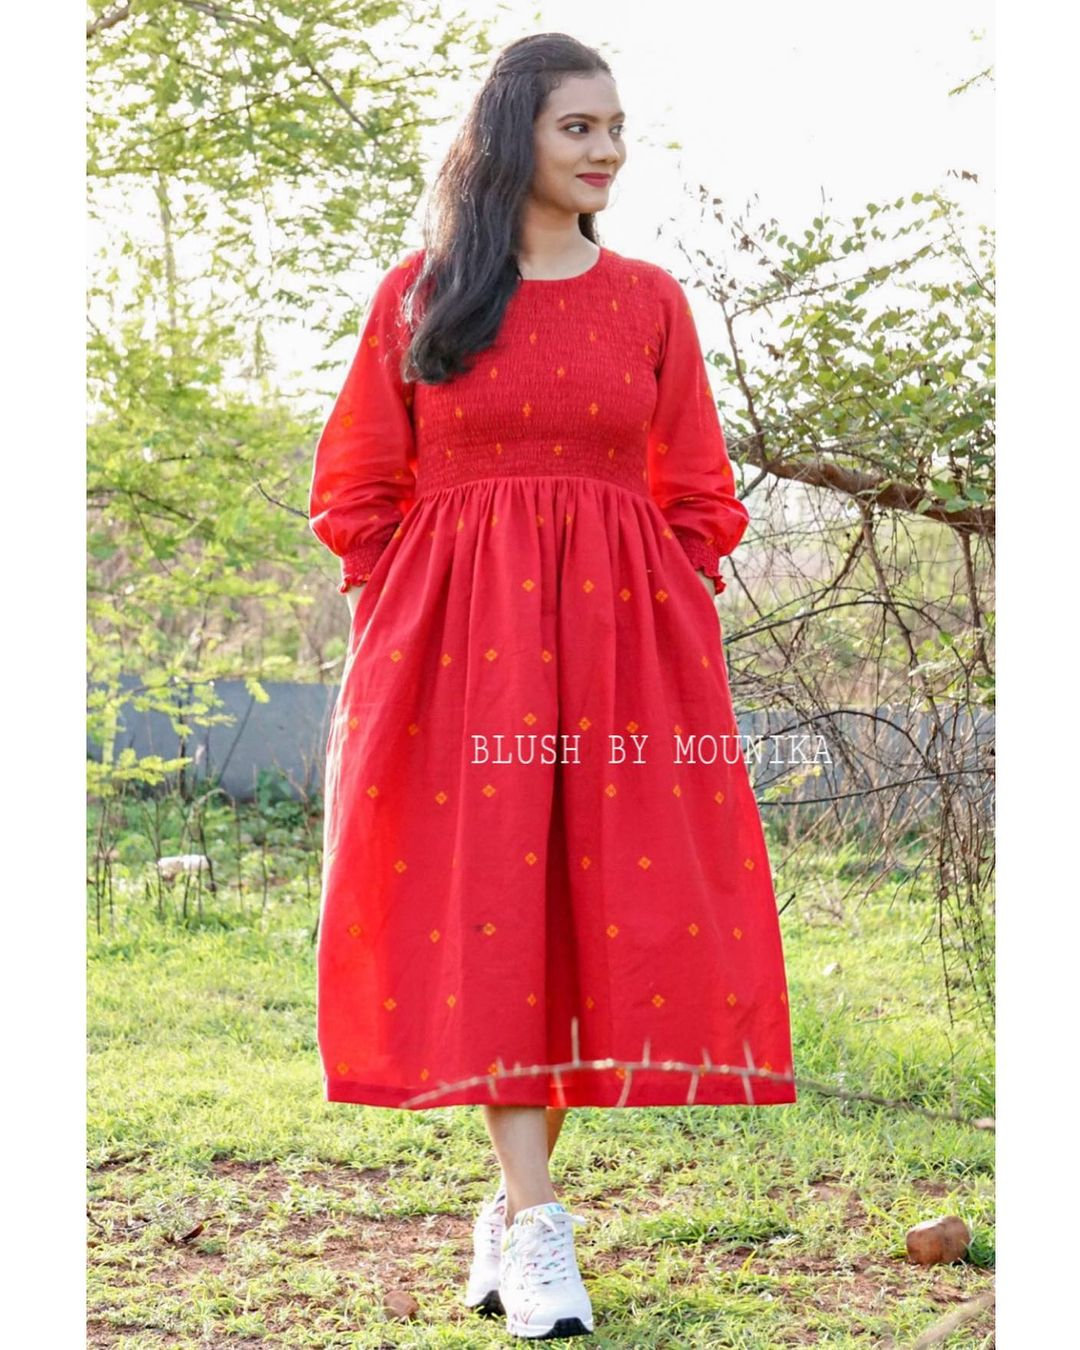 Smocked Hand-Loom. Price : ₹3500  Handloom Frock with Hand Woven buttis. Smocked Yoke part and Sleeves for that extra charm. The dress have pockets too. 2021-06-21